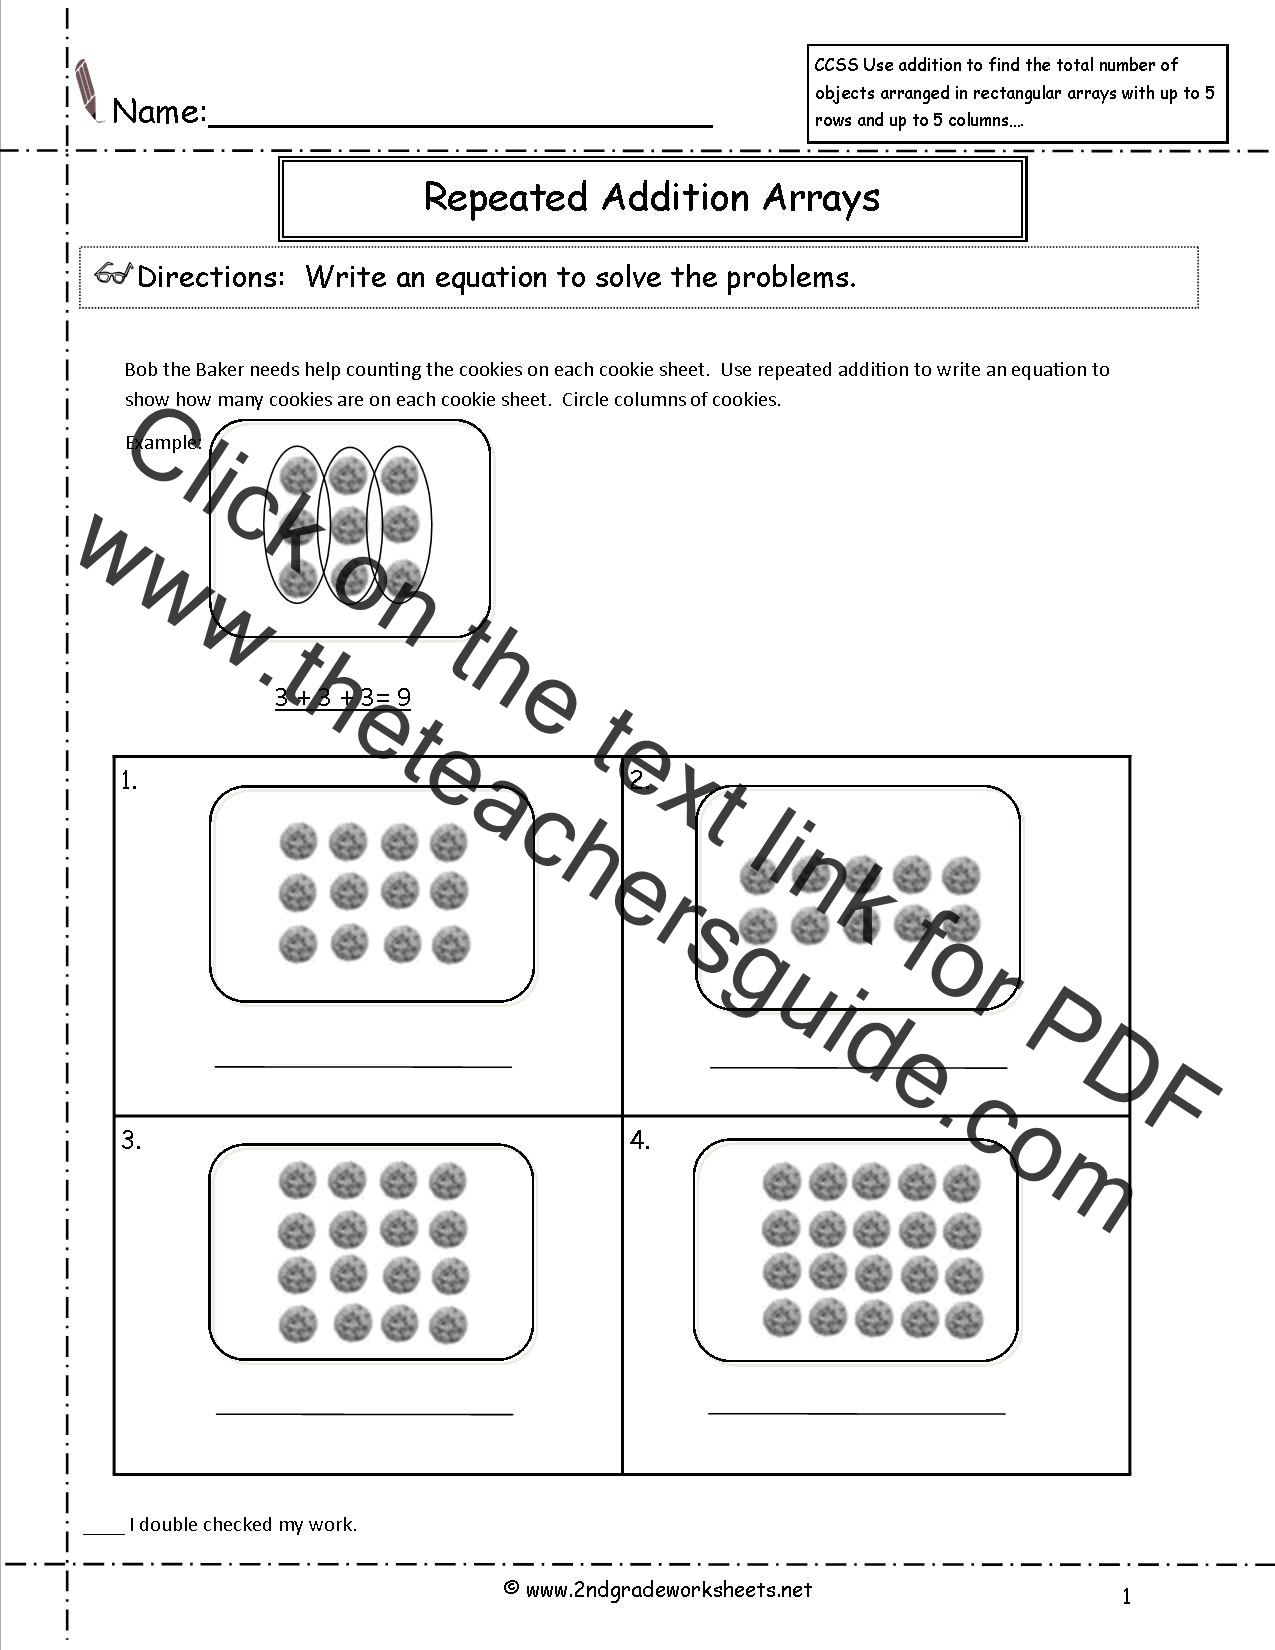 Worksheets 5th Grade Common Core Worksheets ccss 2 oa 4 worksheets repeated addition arrays common core